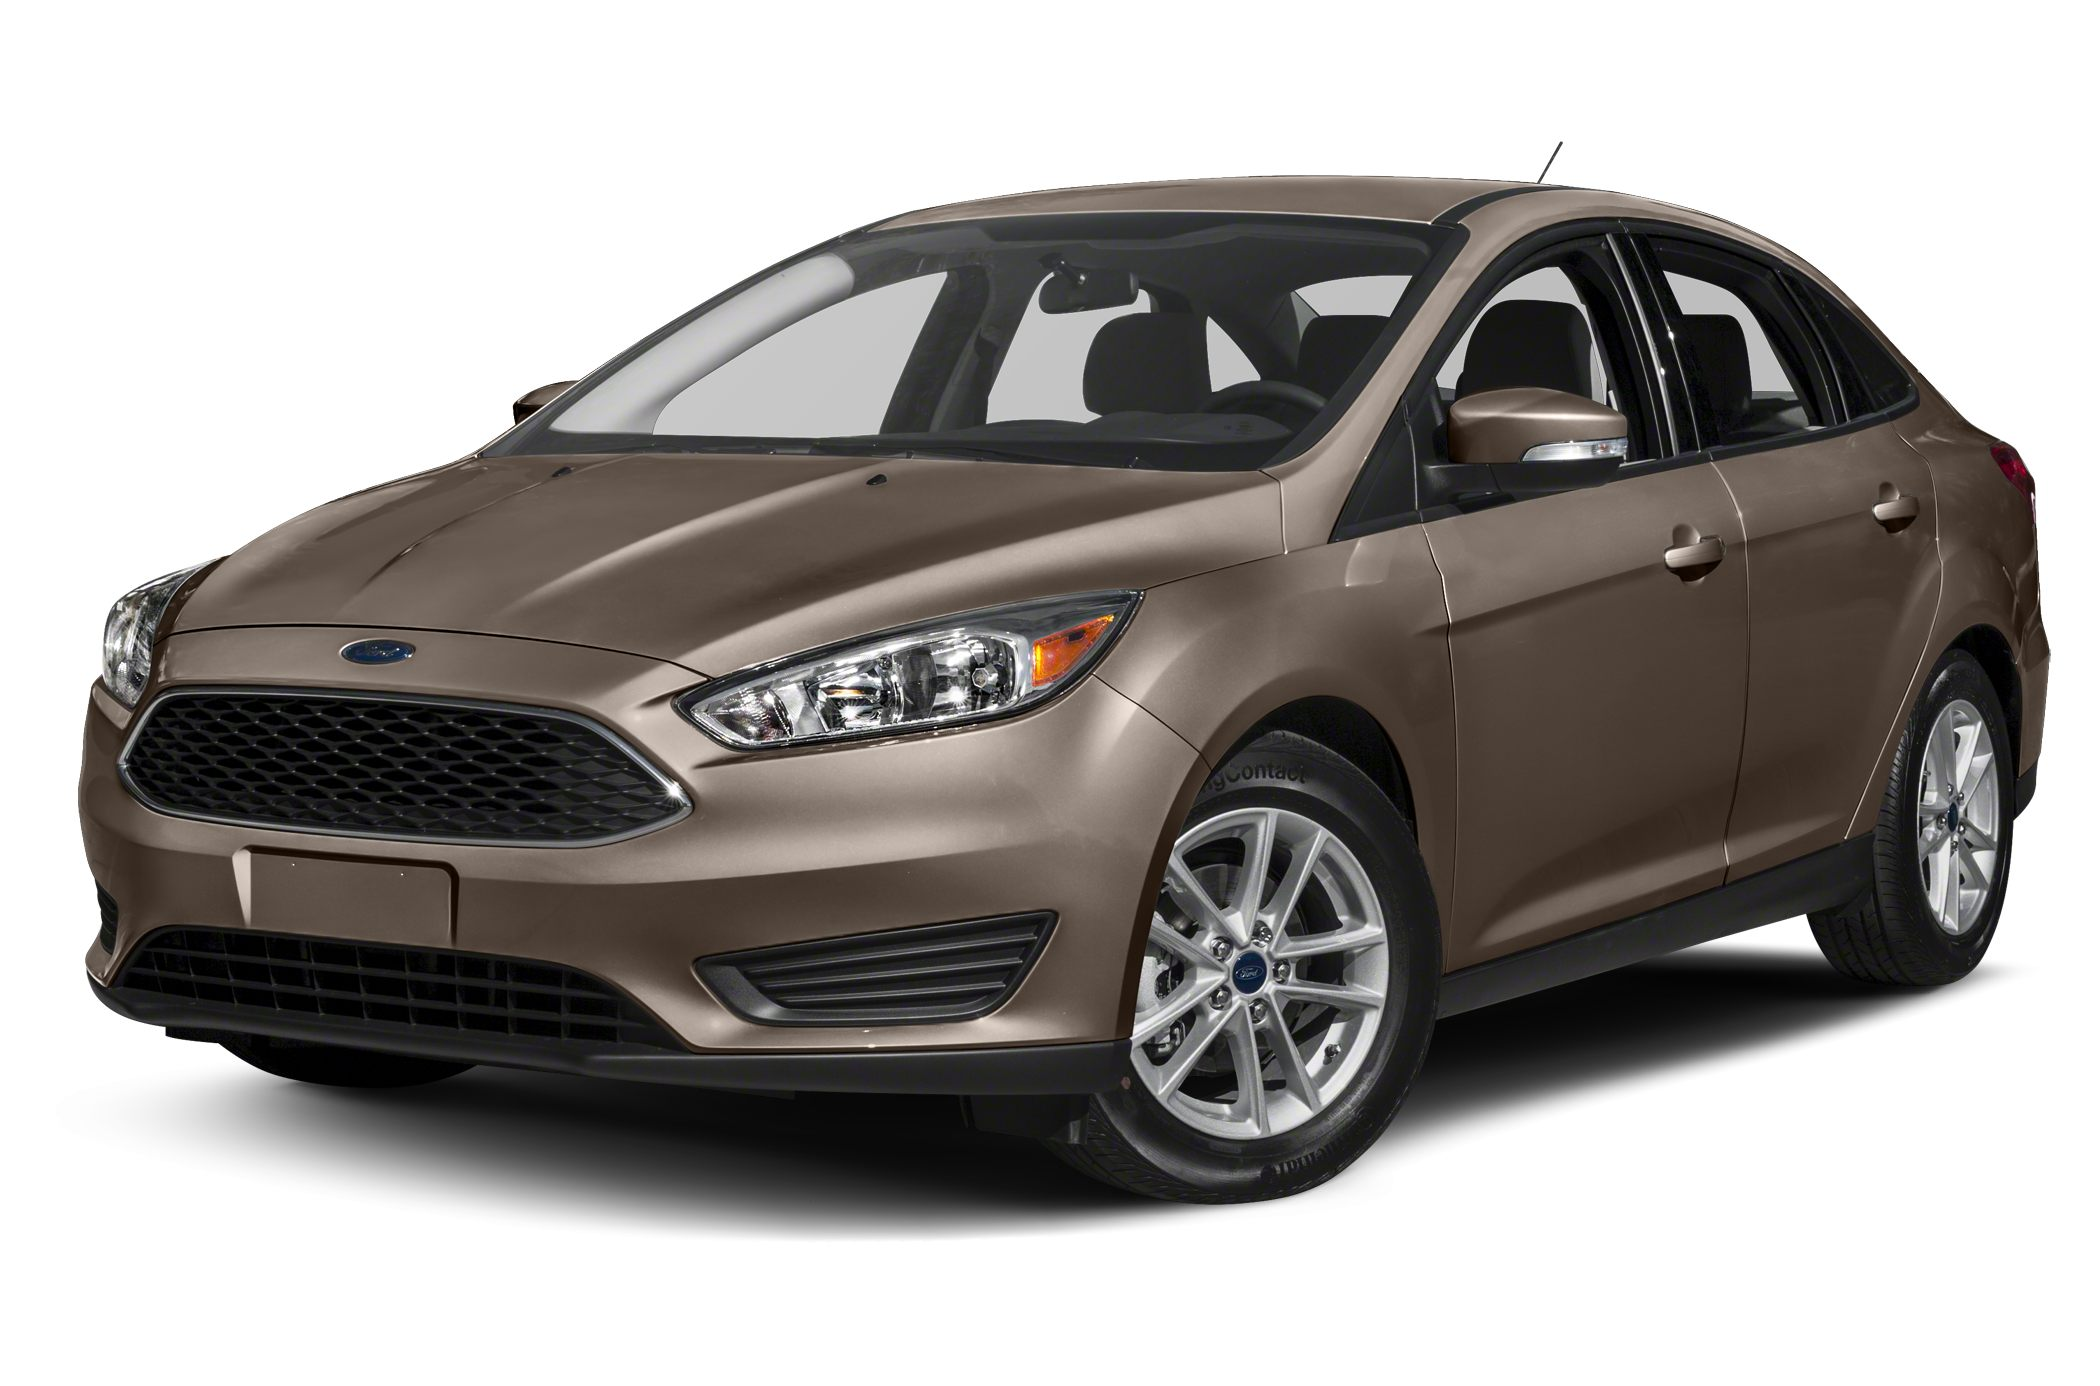 2015 Ford Focus SE Focus SE 4D Sedan 20L 4-Cylinder DGI DOHC FWD Magnetic and Charcoal Black